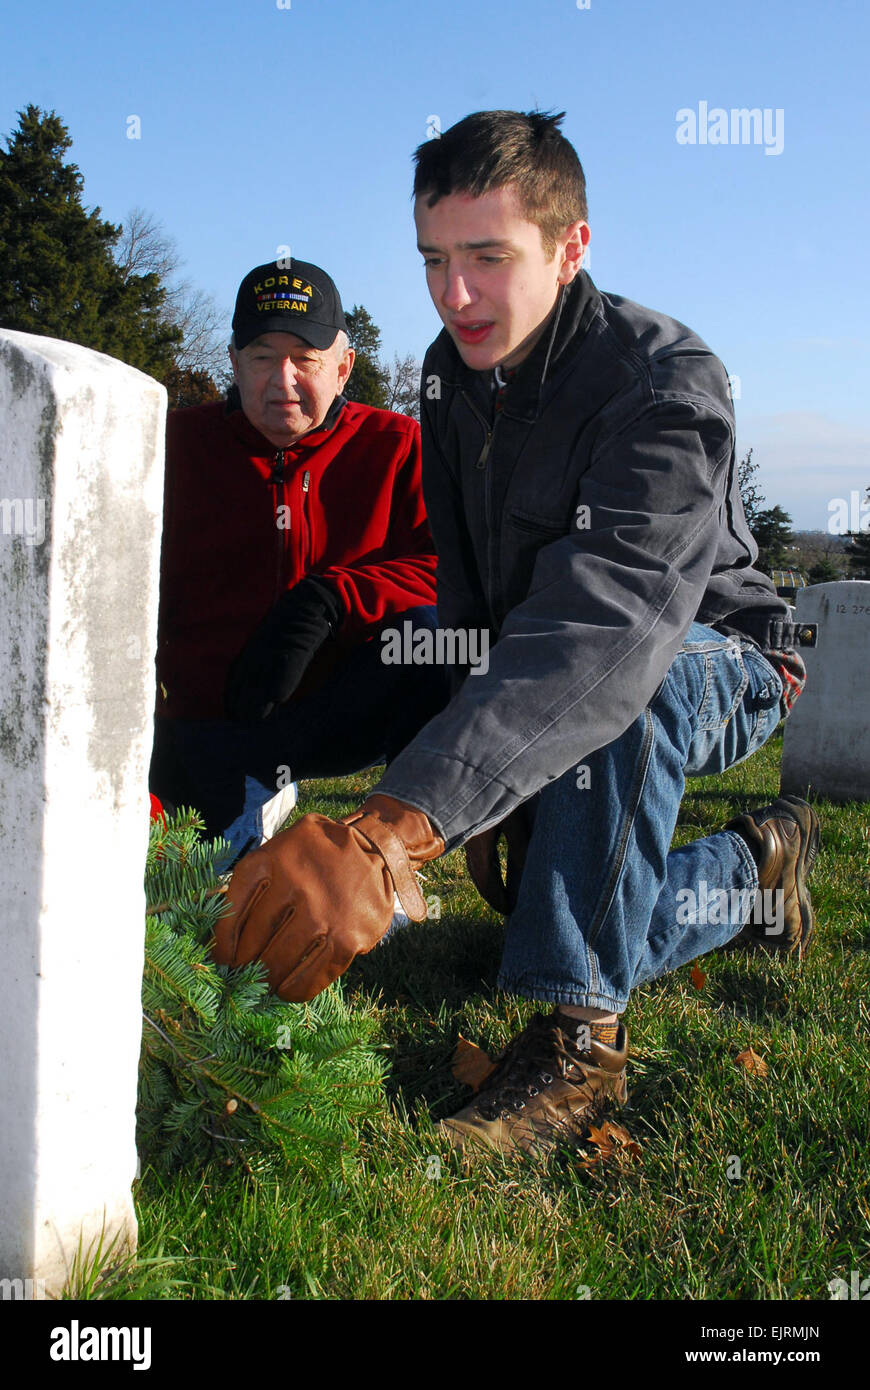 Josh Danis, an 11th grader from Portland, Maine, and his grandfather, Ralph Danis, of Arundel, Maine, lay a wreath - Stock Image